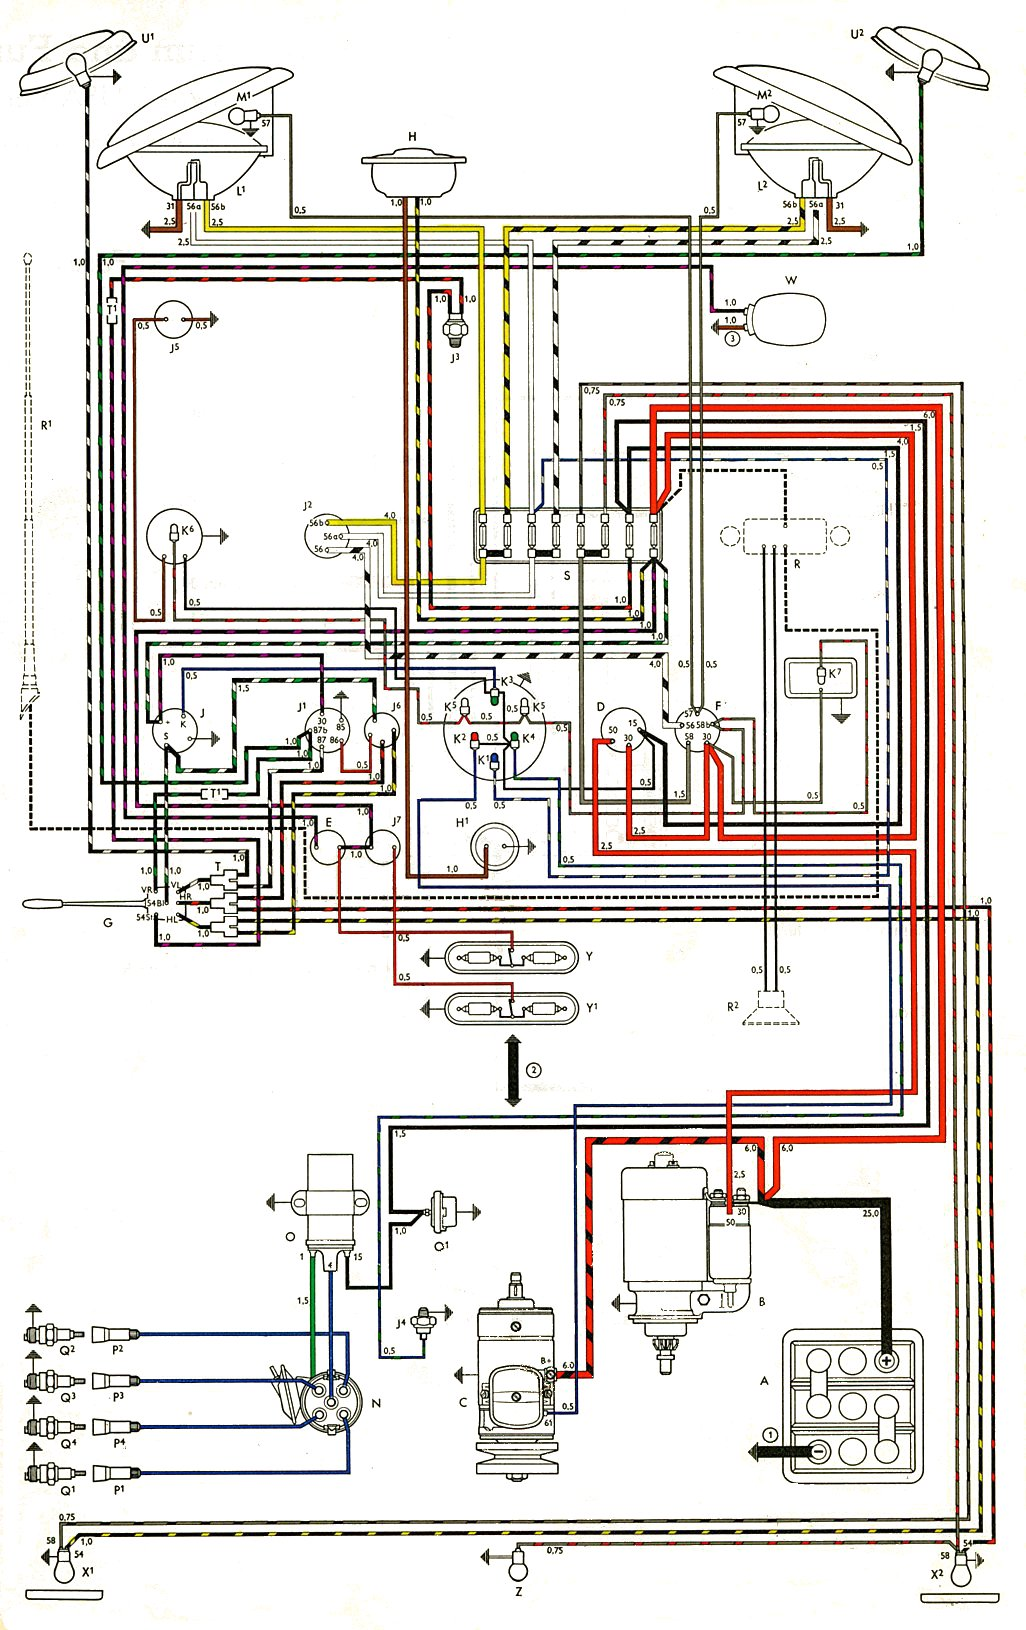 bus_63_USA thesamba com type 2 wiring diagrams vw wiring diagrams at readyjetset.co